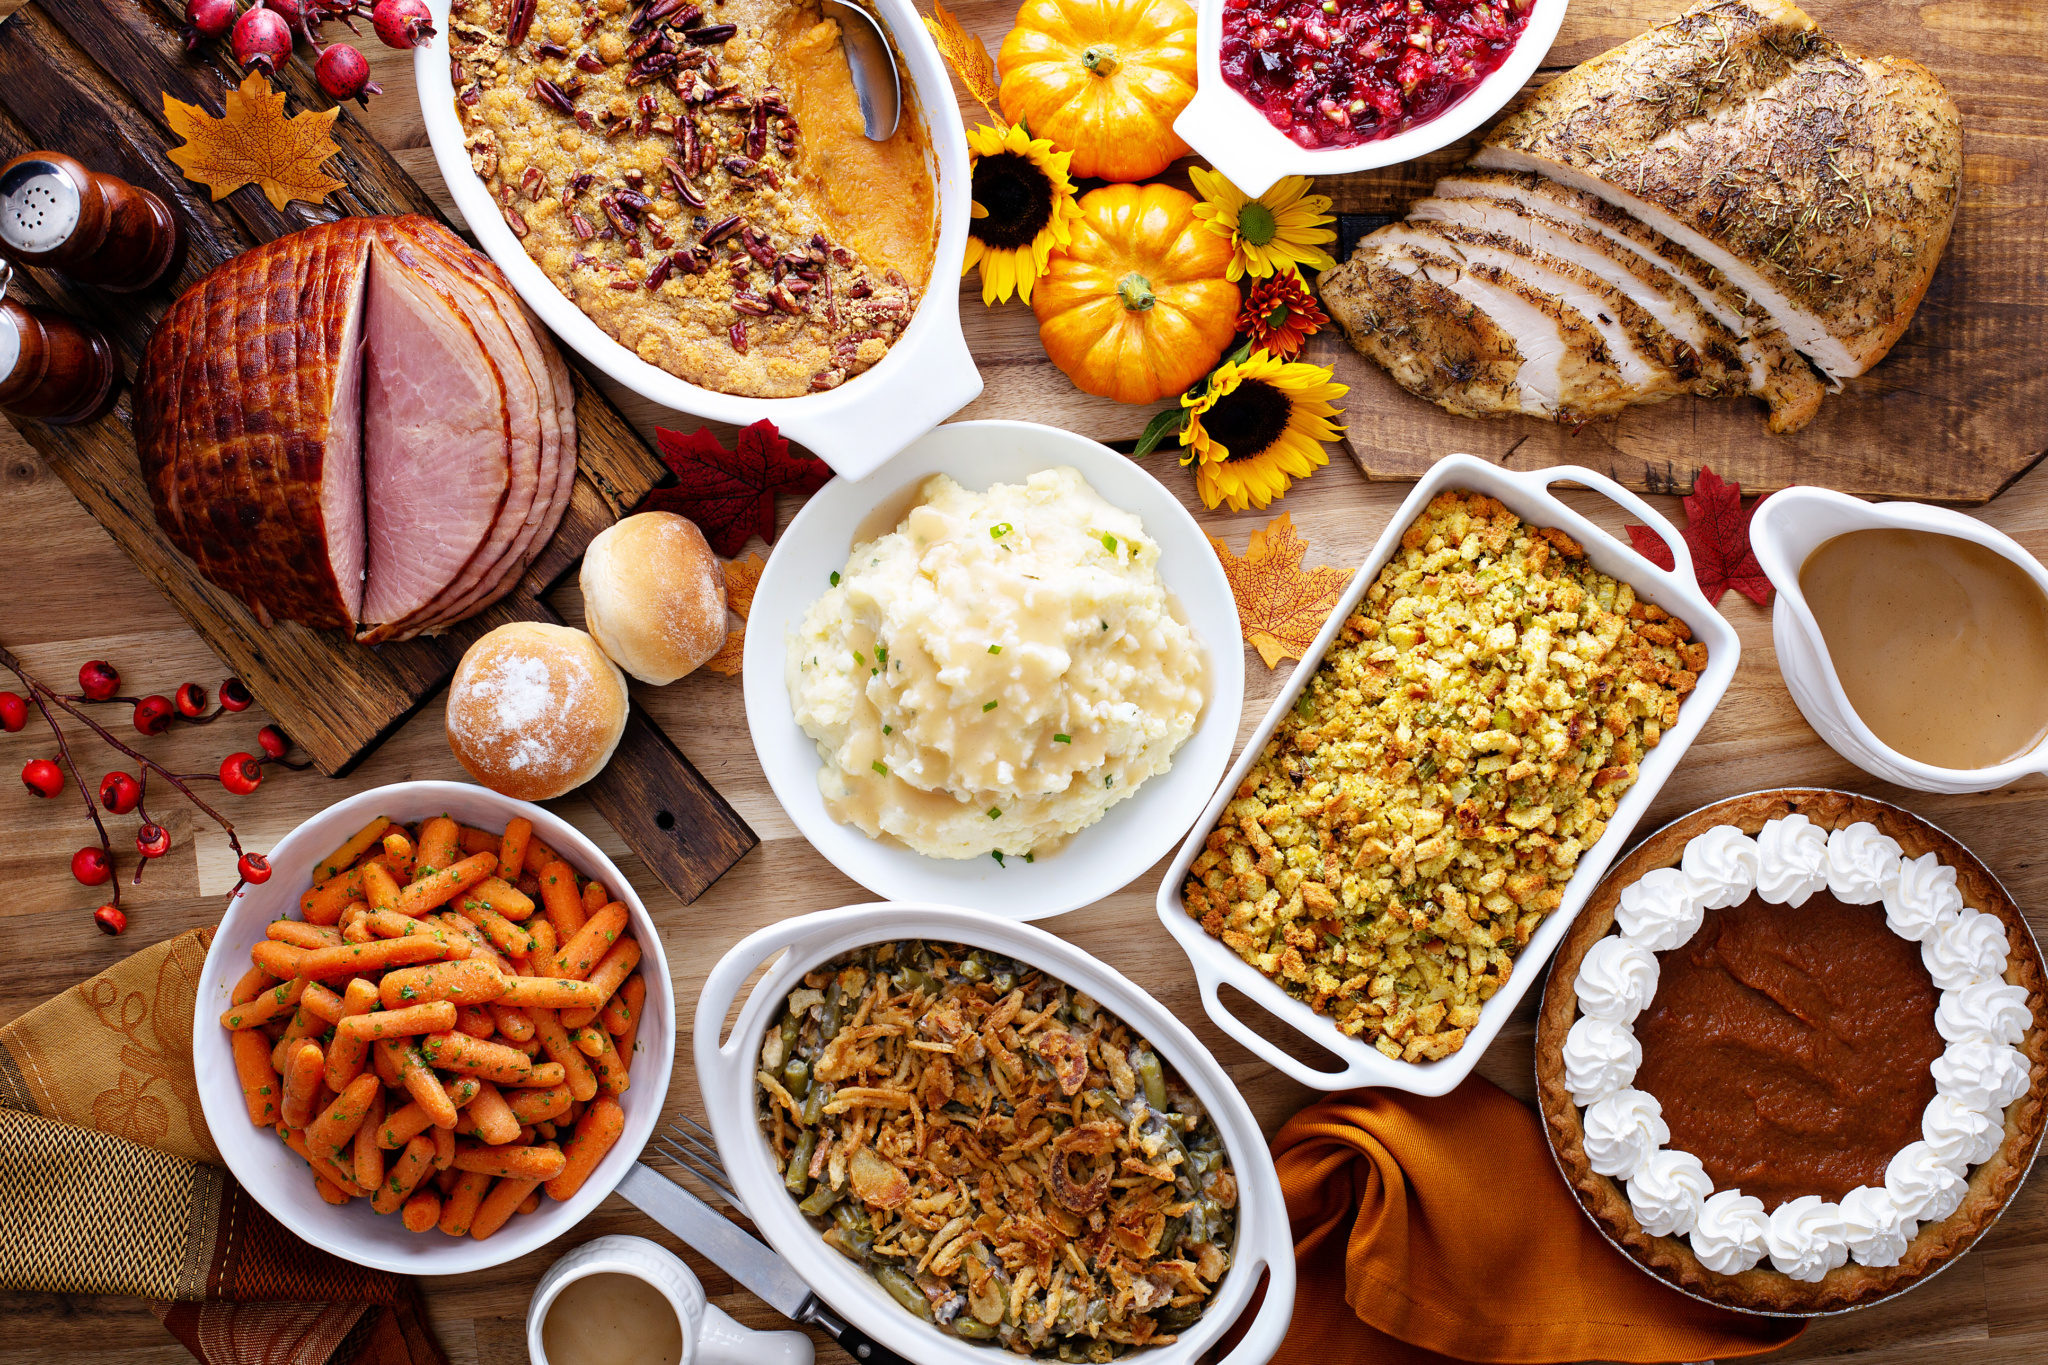 View from above of a holiday table display. Carrots, green bean casserole, stuffing, pumpkin pie, mashed potatoes, sliced turkey and ham and cranberry sauce